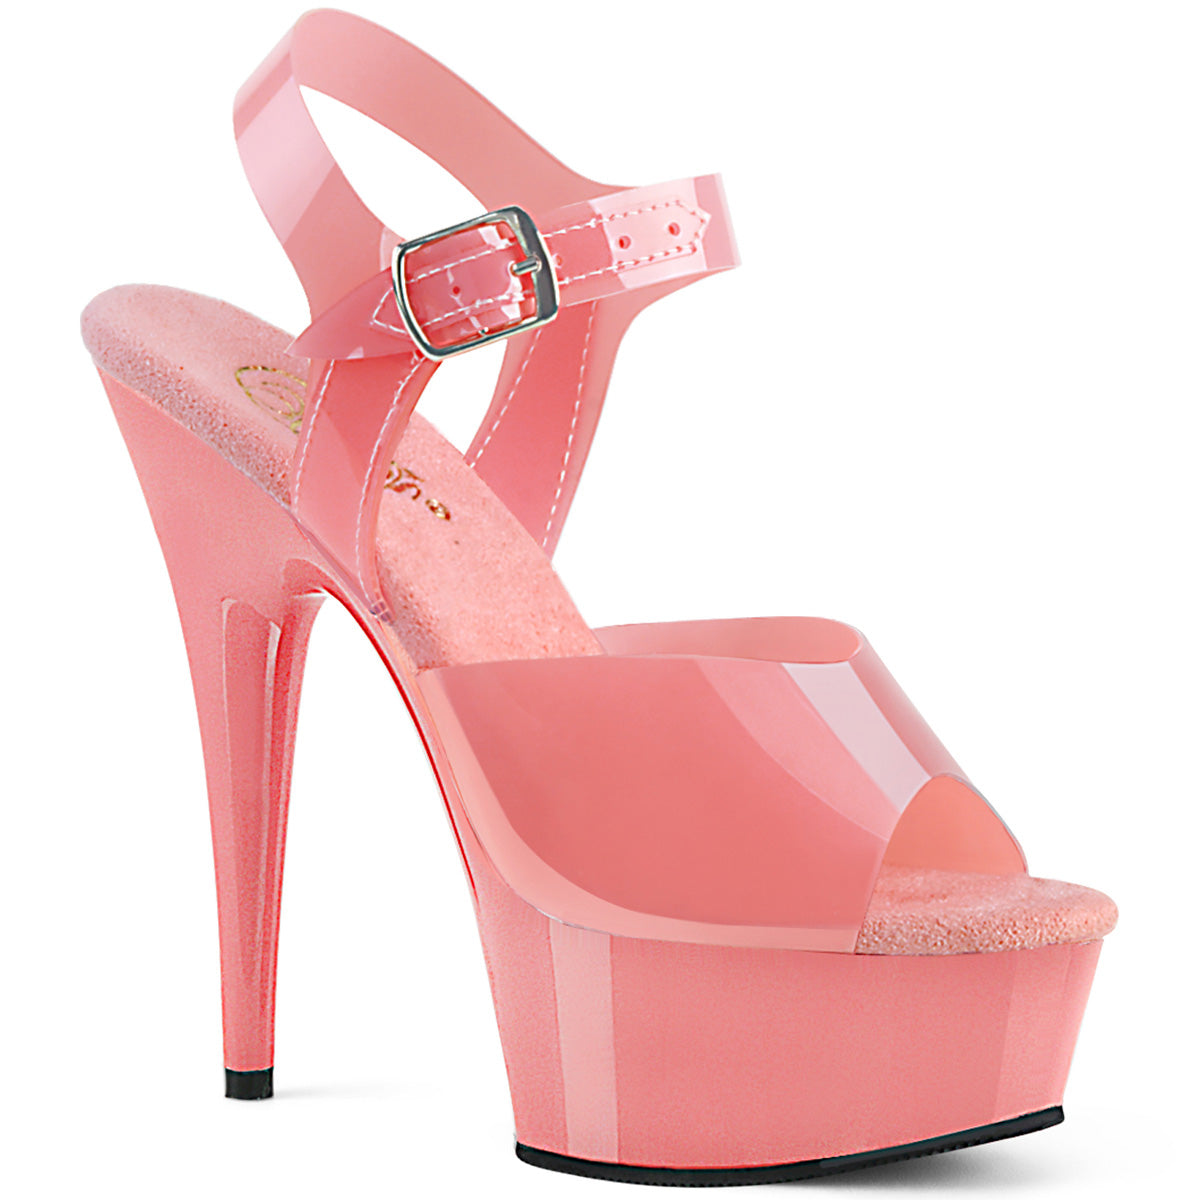 DELIGHT-608N Pleaser Sexy Shoes 6 Inch Stiletto Heel Ankle Strap ...